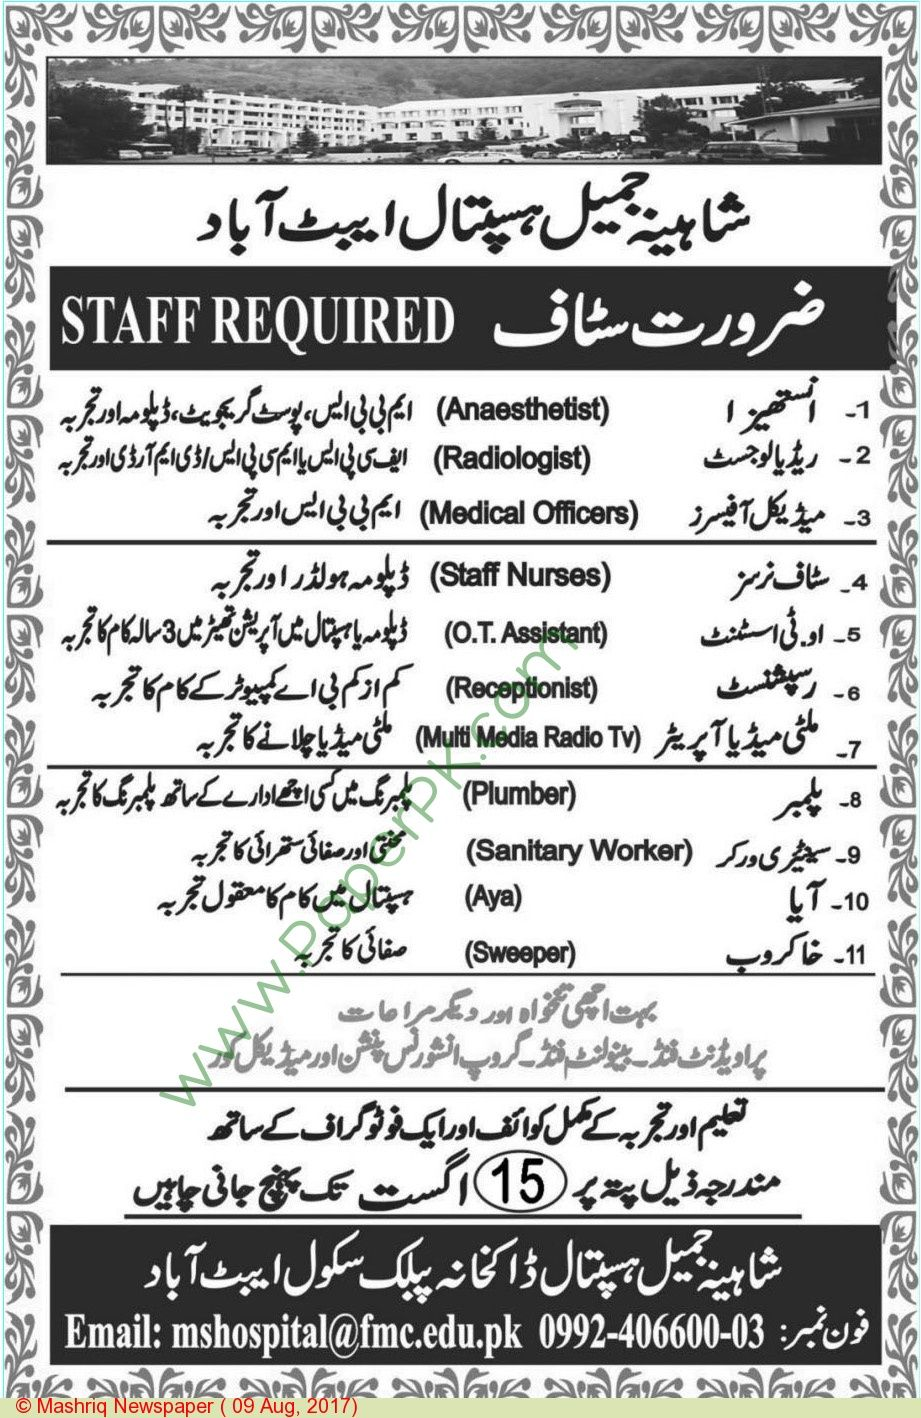 Shaheen Jamil Hospital Abbottabad Jobs  Jobs In Pakistan